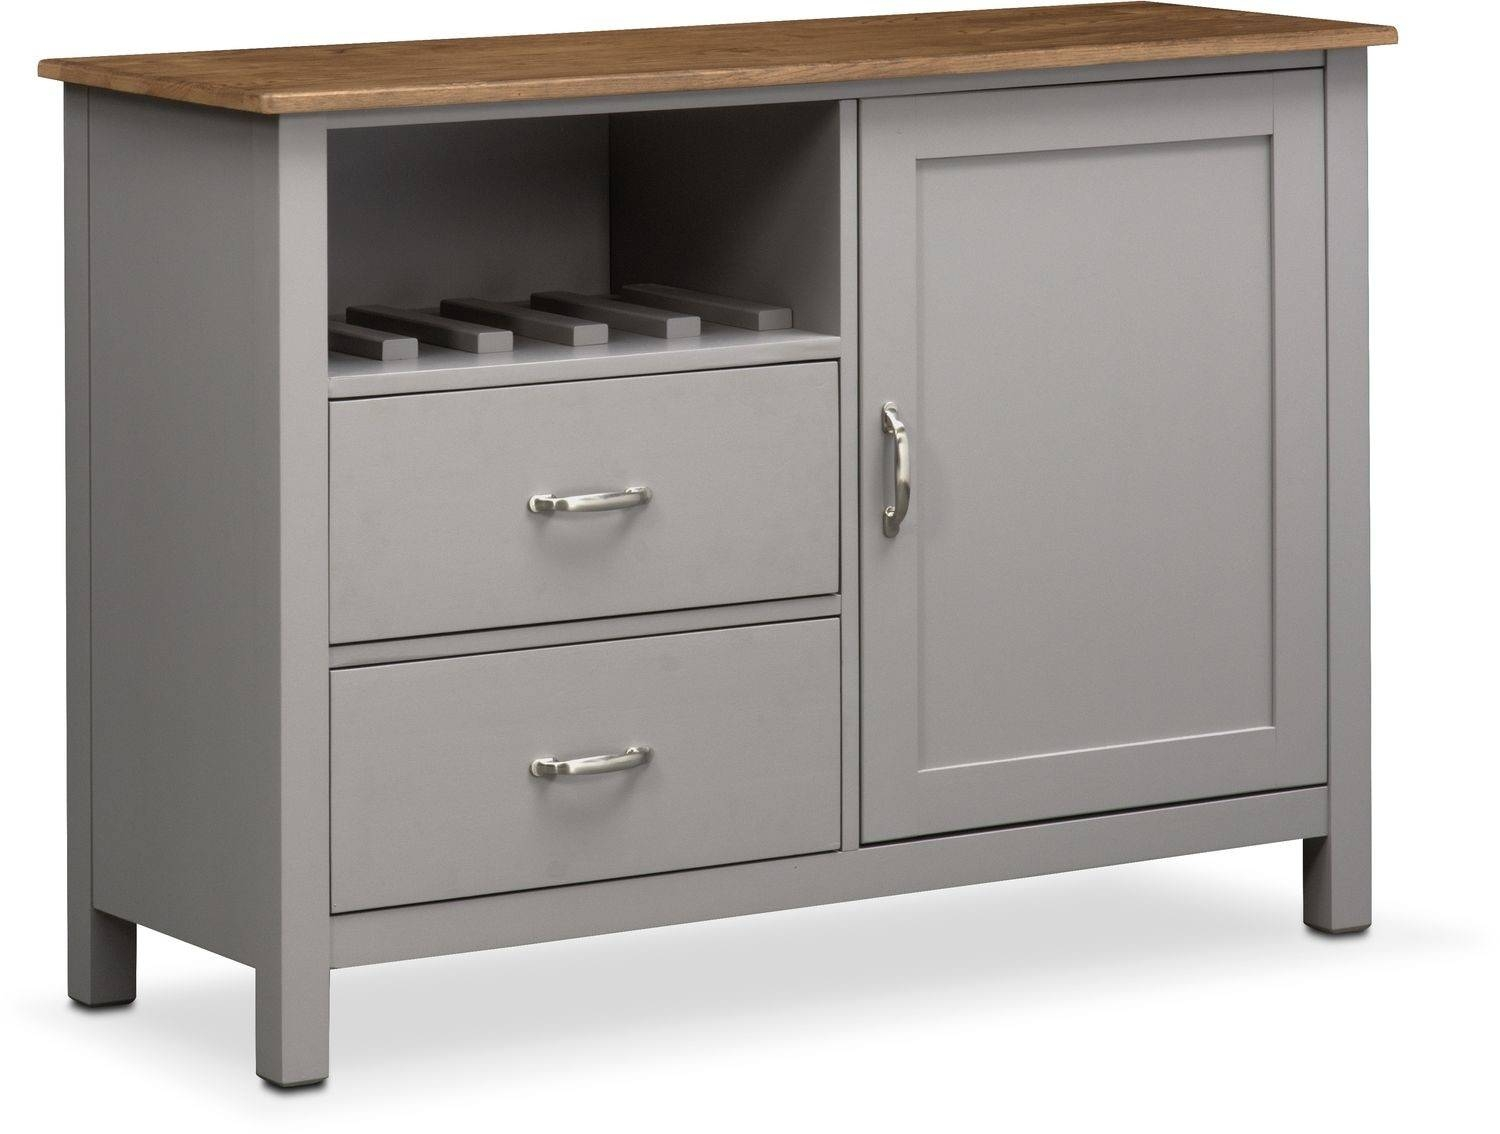 Nantucket Sideboard - Oak And Gray | Value City Furniture inside Grey Sideboards (Image 14 of 30)